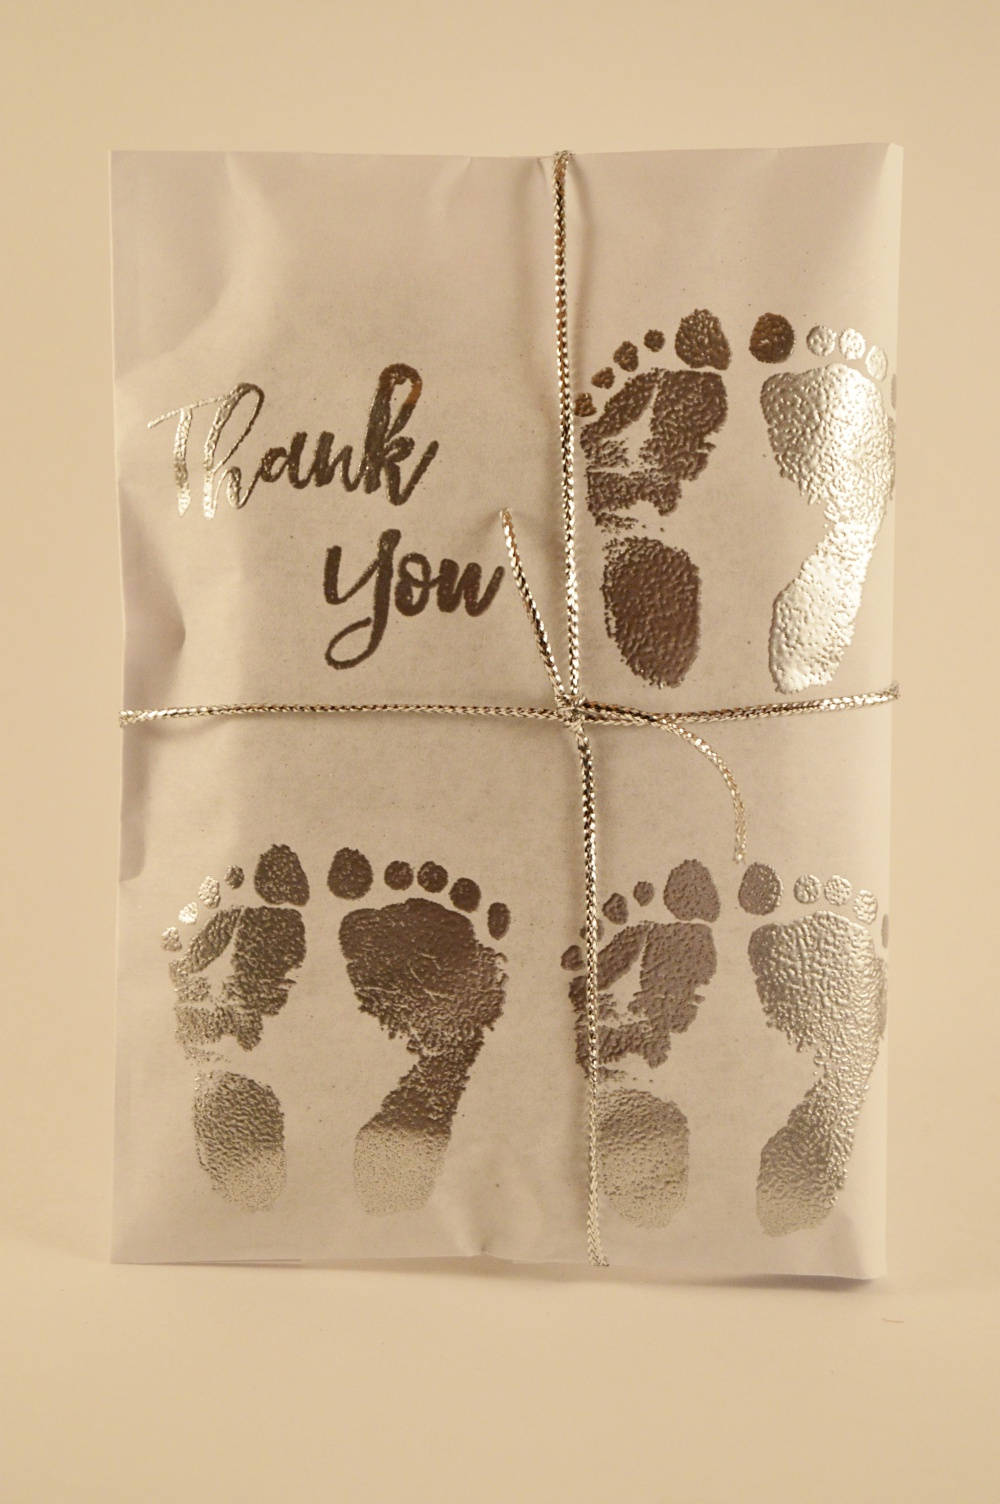 25 Triplet Baby Shower Favors. Silver and White Paper Favors. Fresh Roasted Coffee